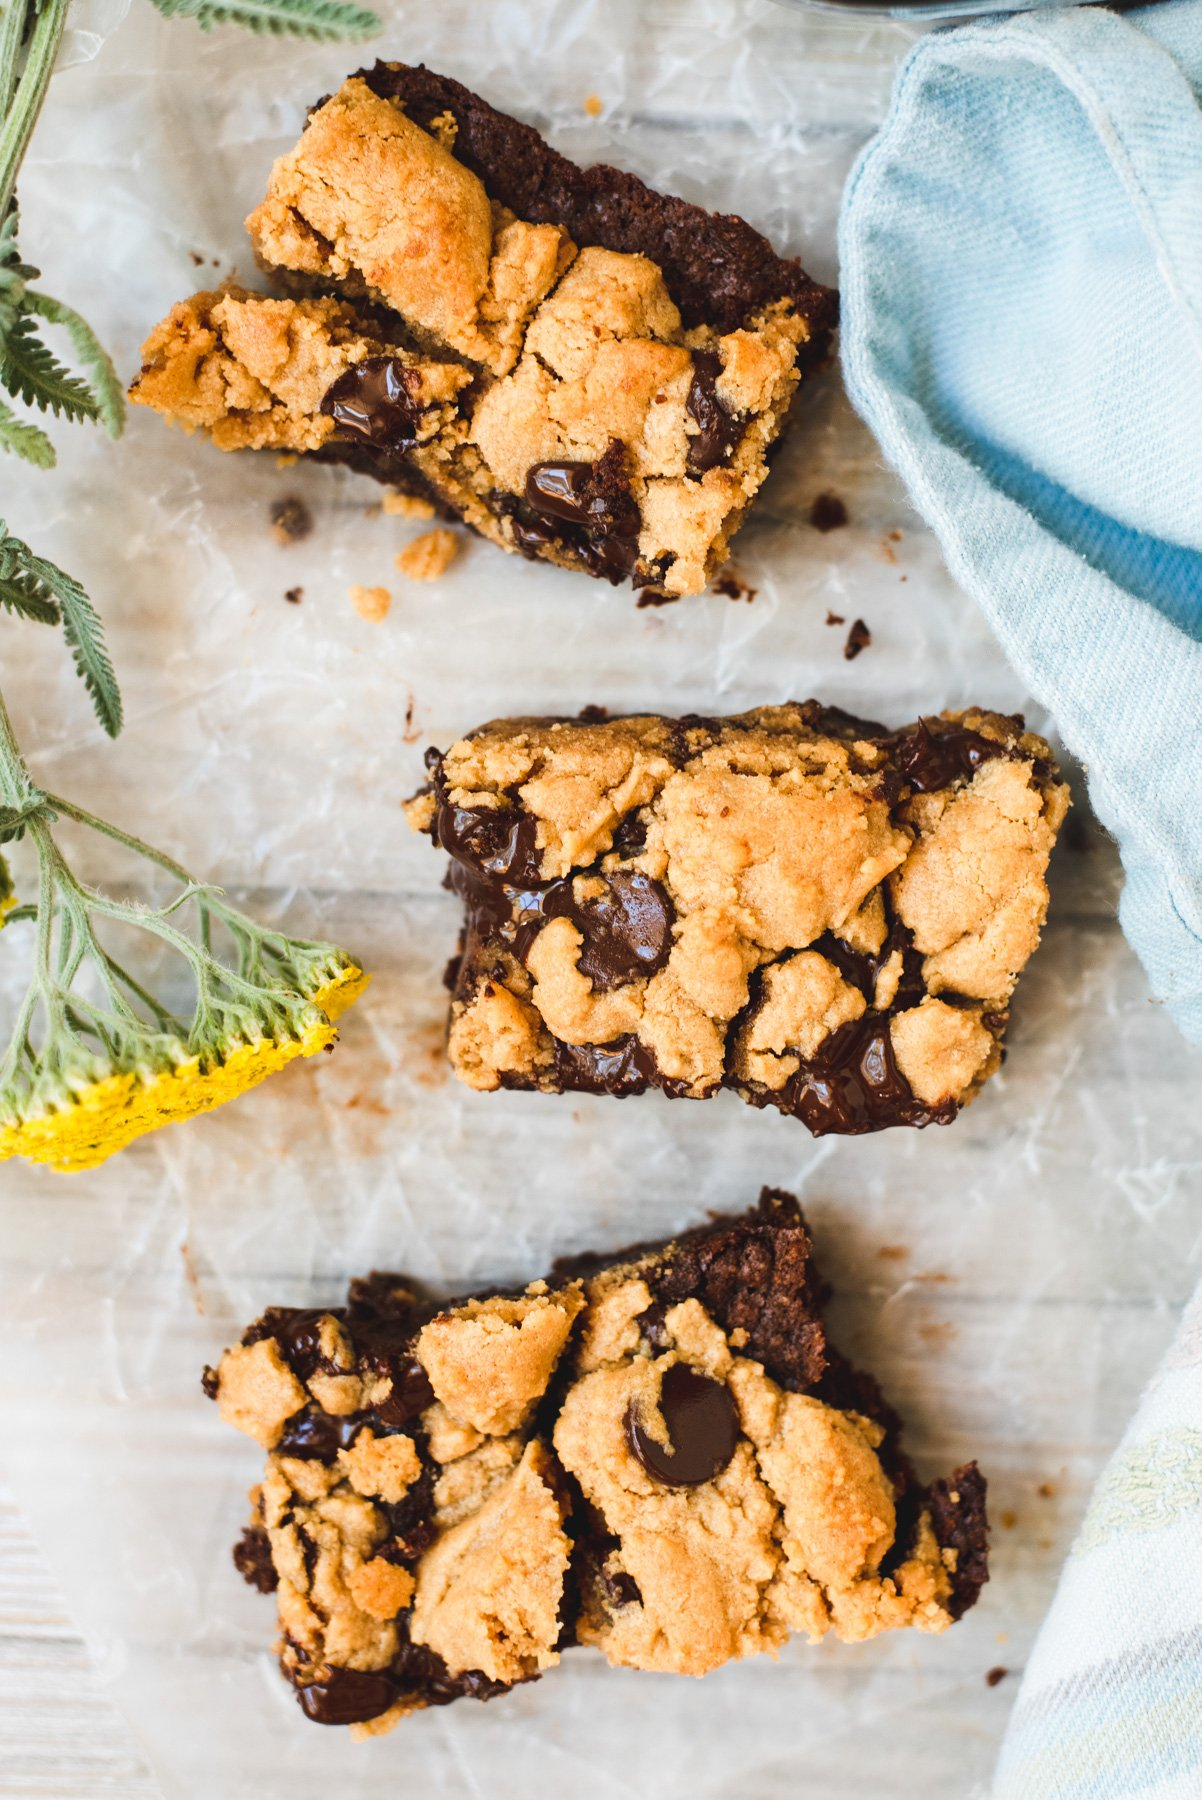 Three slices of peanut butter brookies on a white background next to a yellow flower